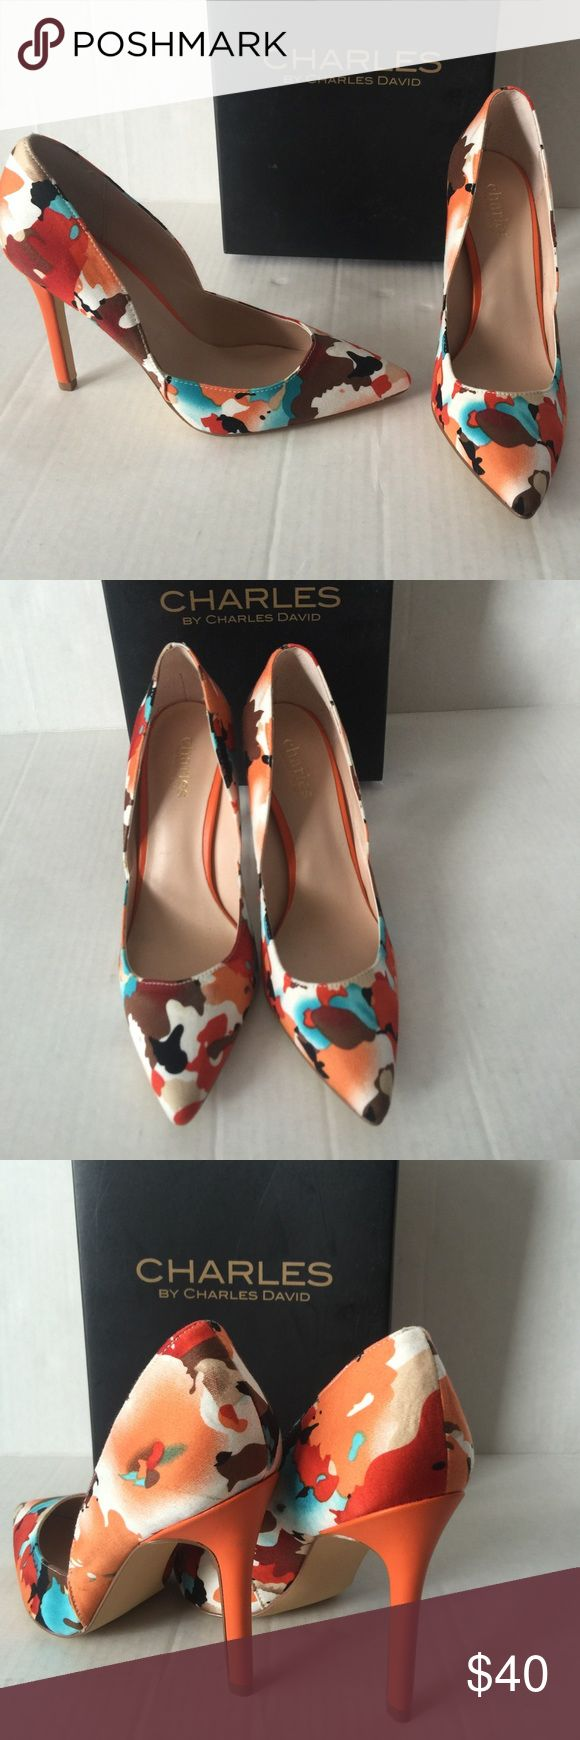 Charles David Orange Camo Flower Pump Patent heels New with original box Charles by Charles David pumps in a size 6.5. Orange Camo Floral Print Patent Heel. A sexy pump that can be worn casual or for a night out. Charles David Shoes Heels